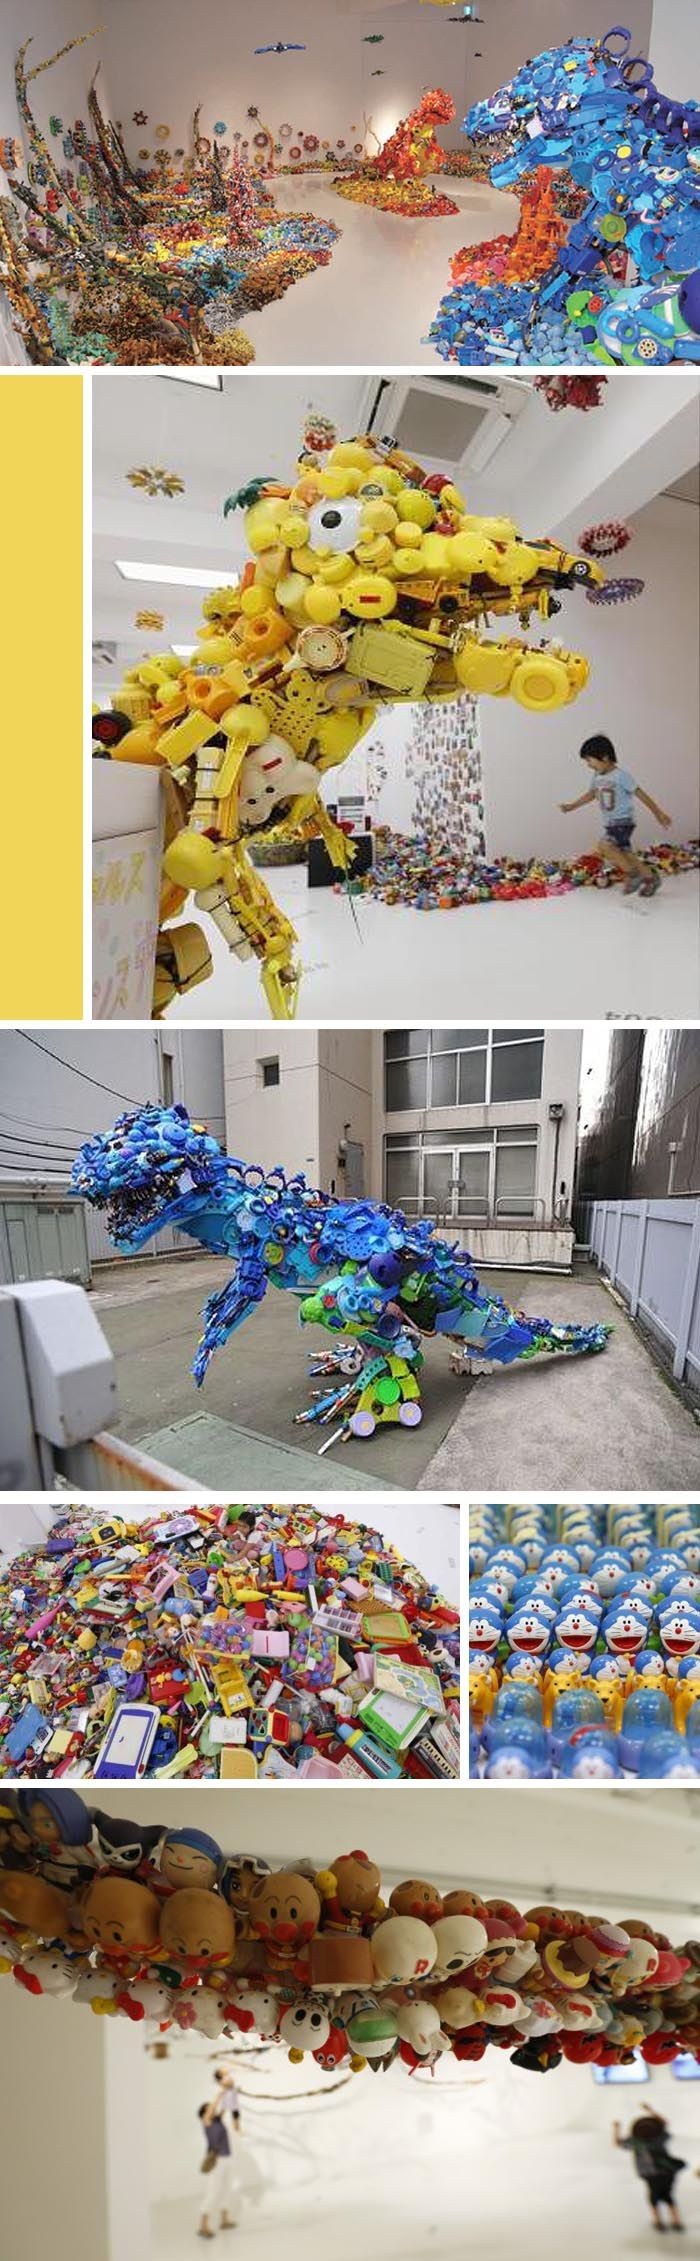 "Hiroshi Fuji, installation exhibit "" Central Kaeru Station -- Where have all these toys come from?""   Includes this fabulous Toy Saurus  Sculpture made from recycled toys.  The exhibit uses toys and recycled materials amassed as part of the artists "" kaekko"" project,  13 years in the making with over 5000 events and 1000 locations in Japan and other countries."